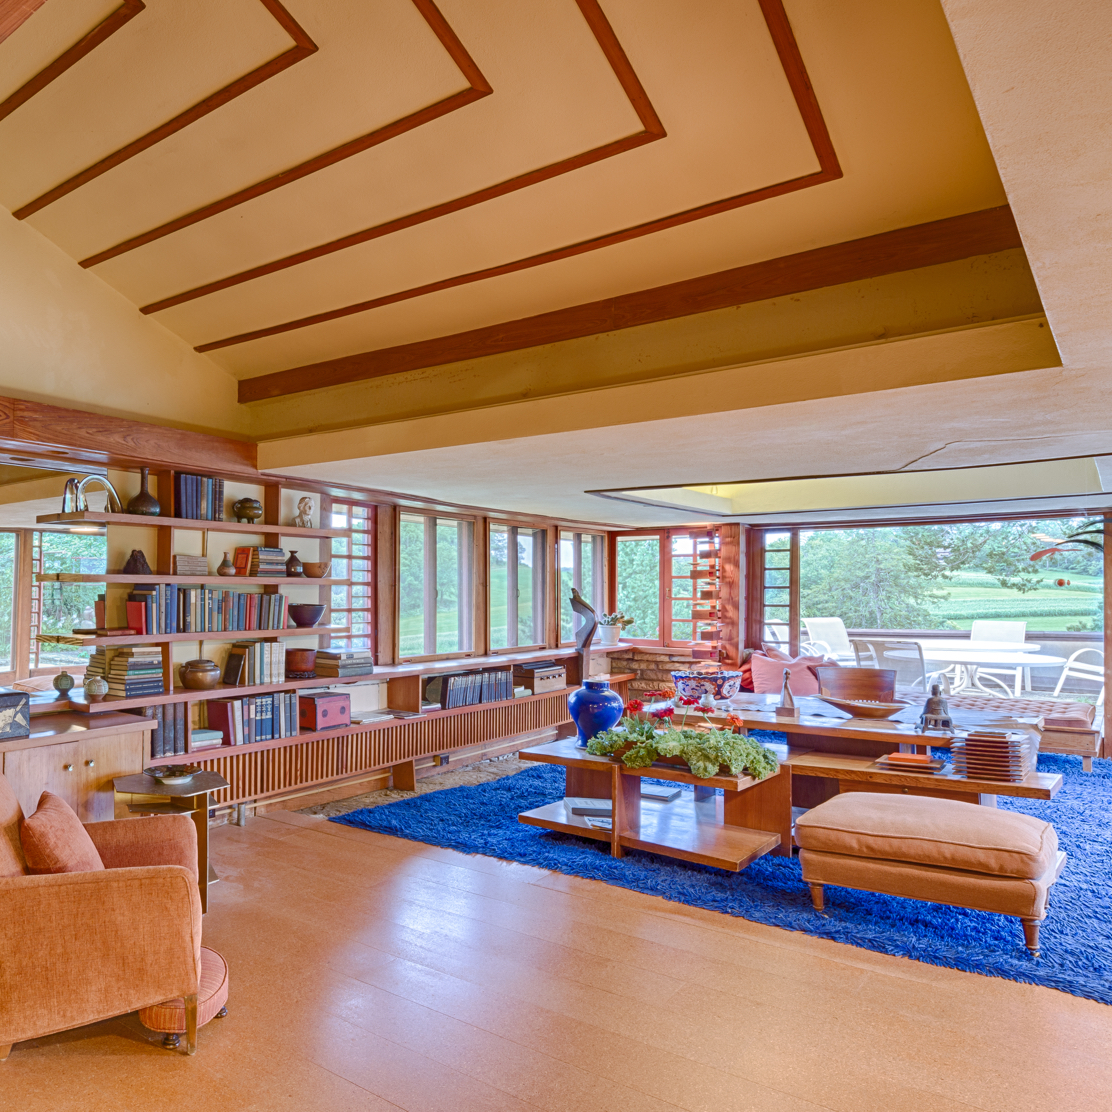 Peek Inside 7 Iconic Frank Lloyd Wright Buildings